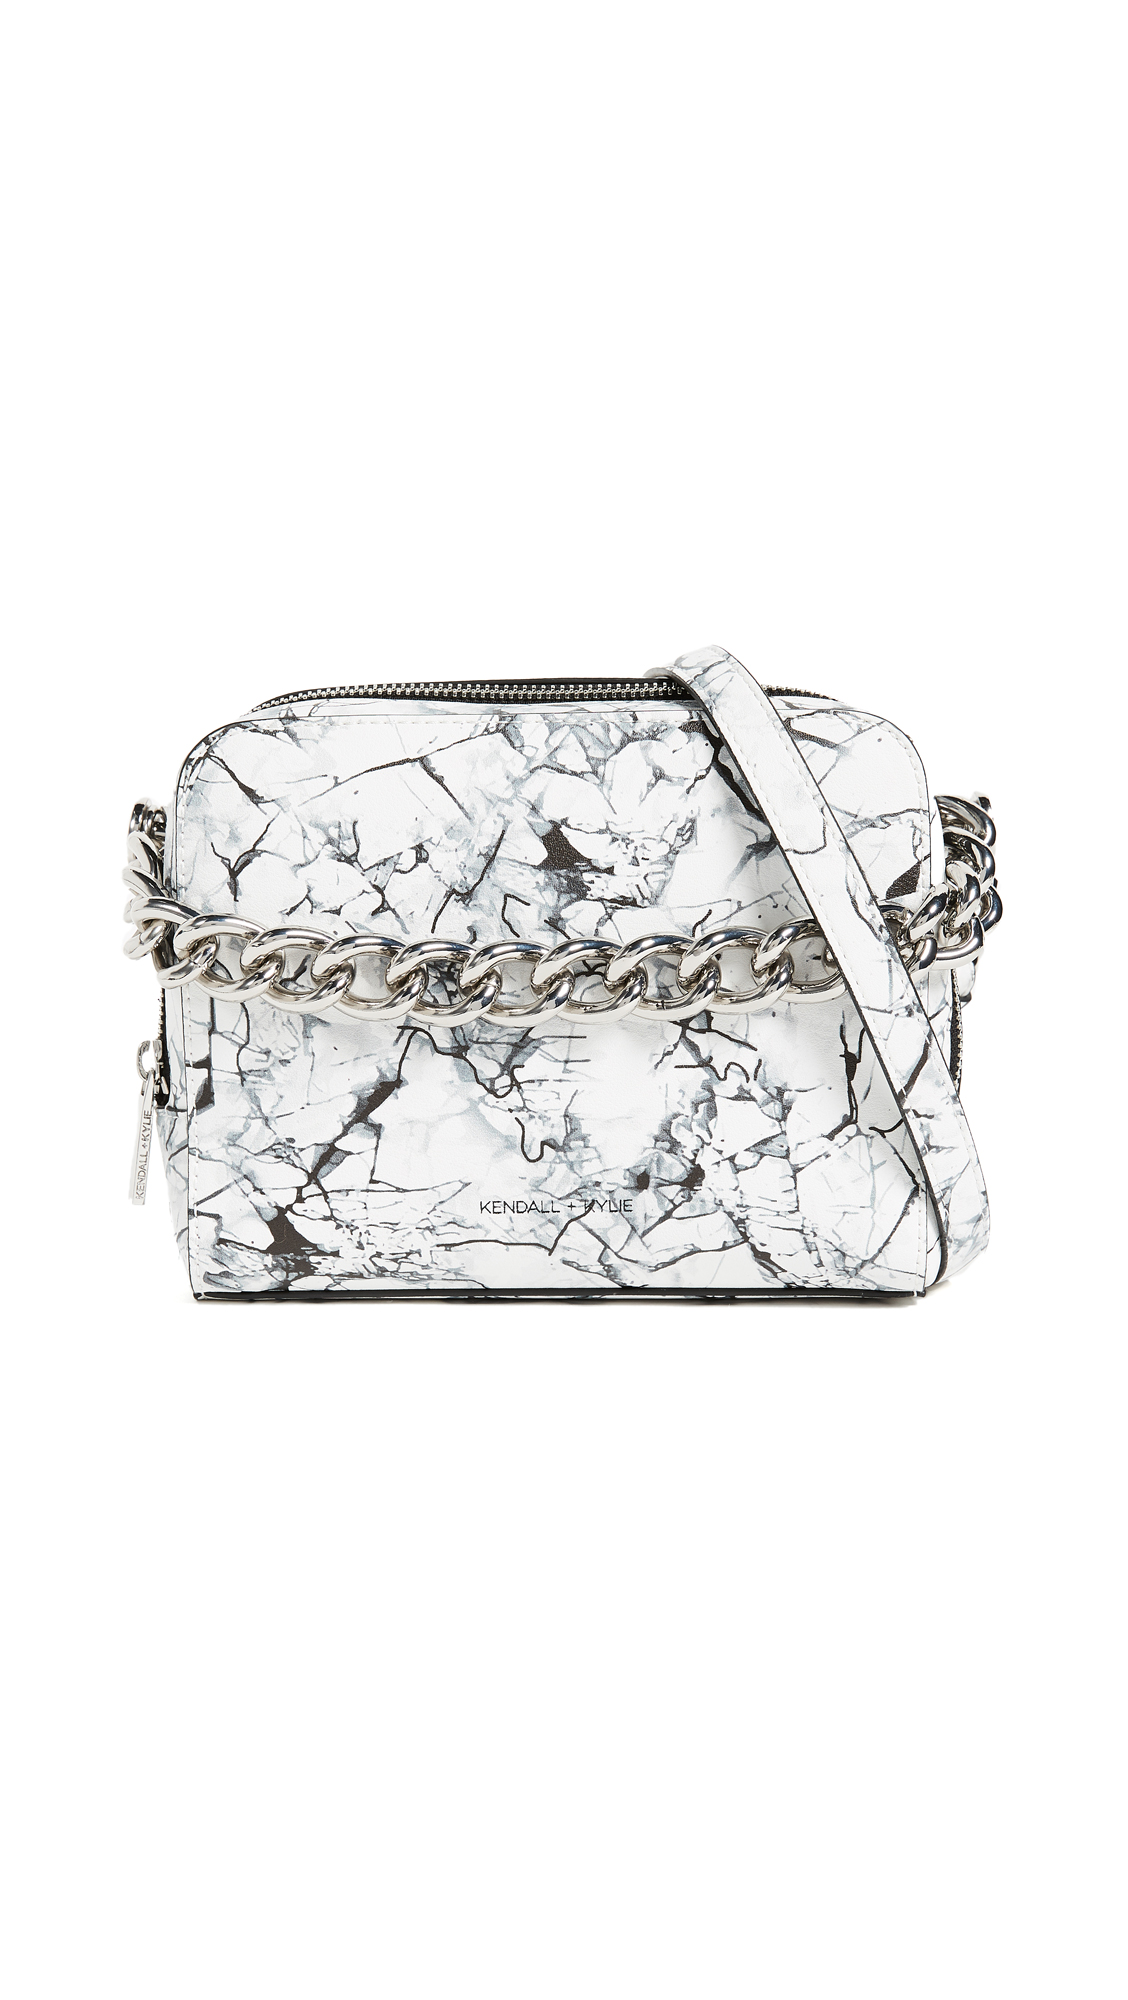 KENDALL + KYLIE Lucy Cross Body Bag - White Marble